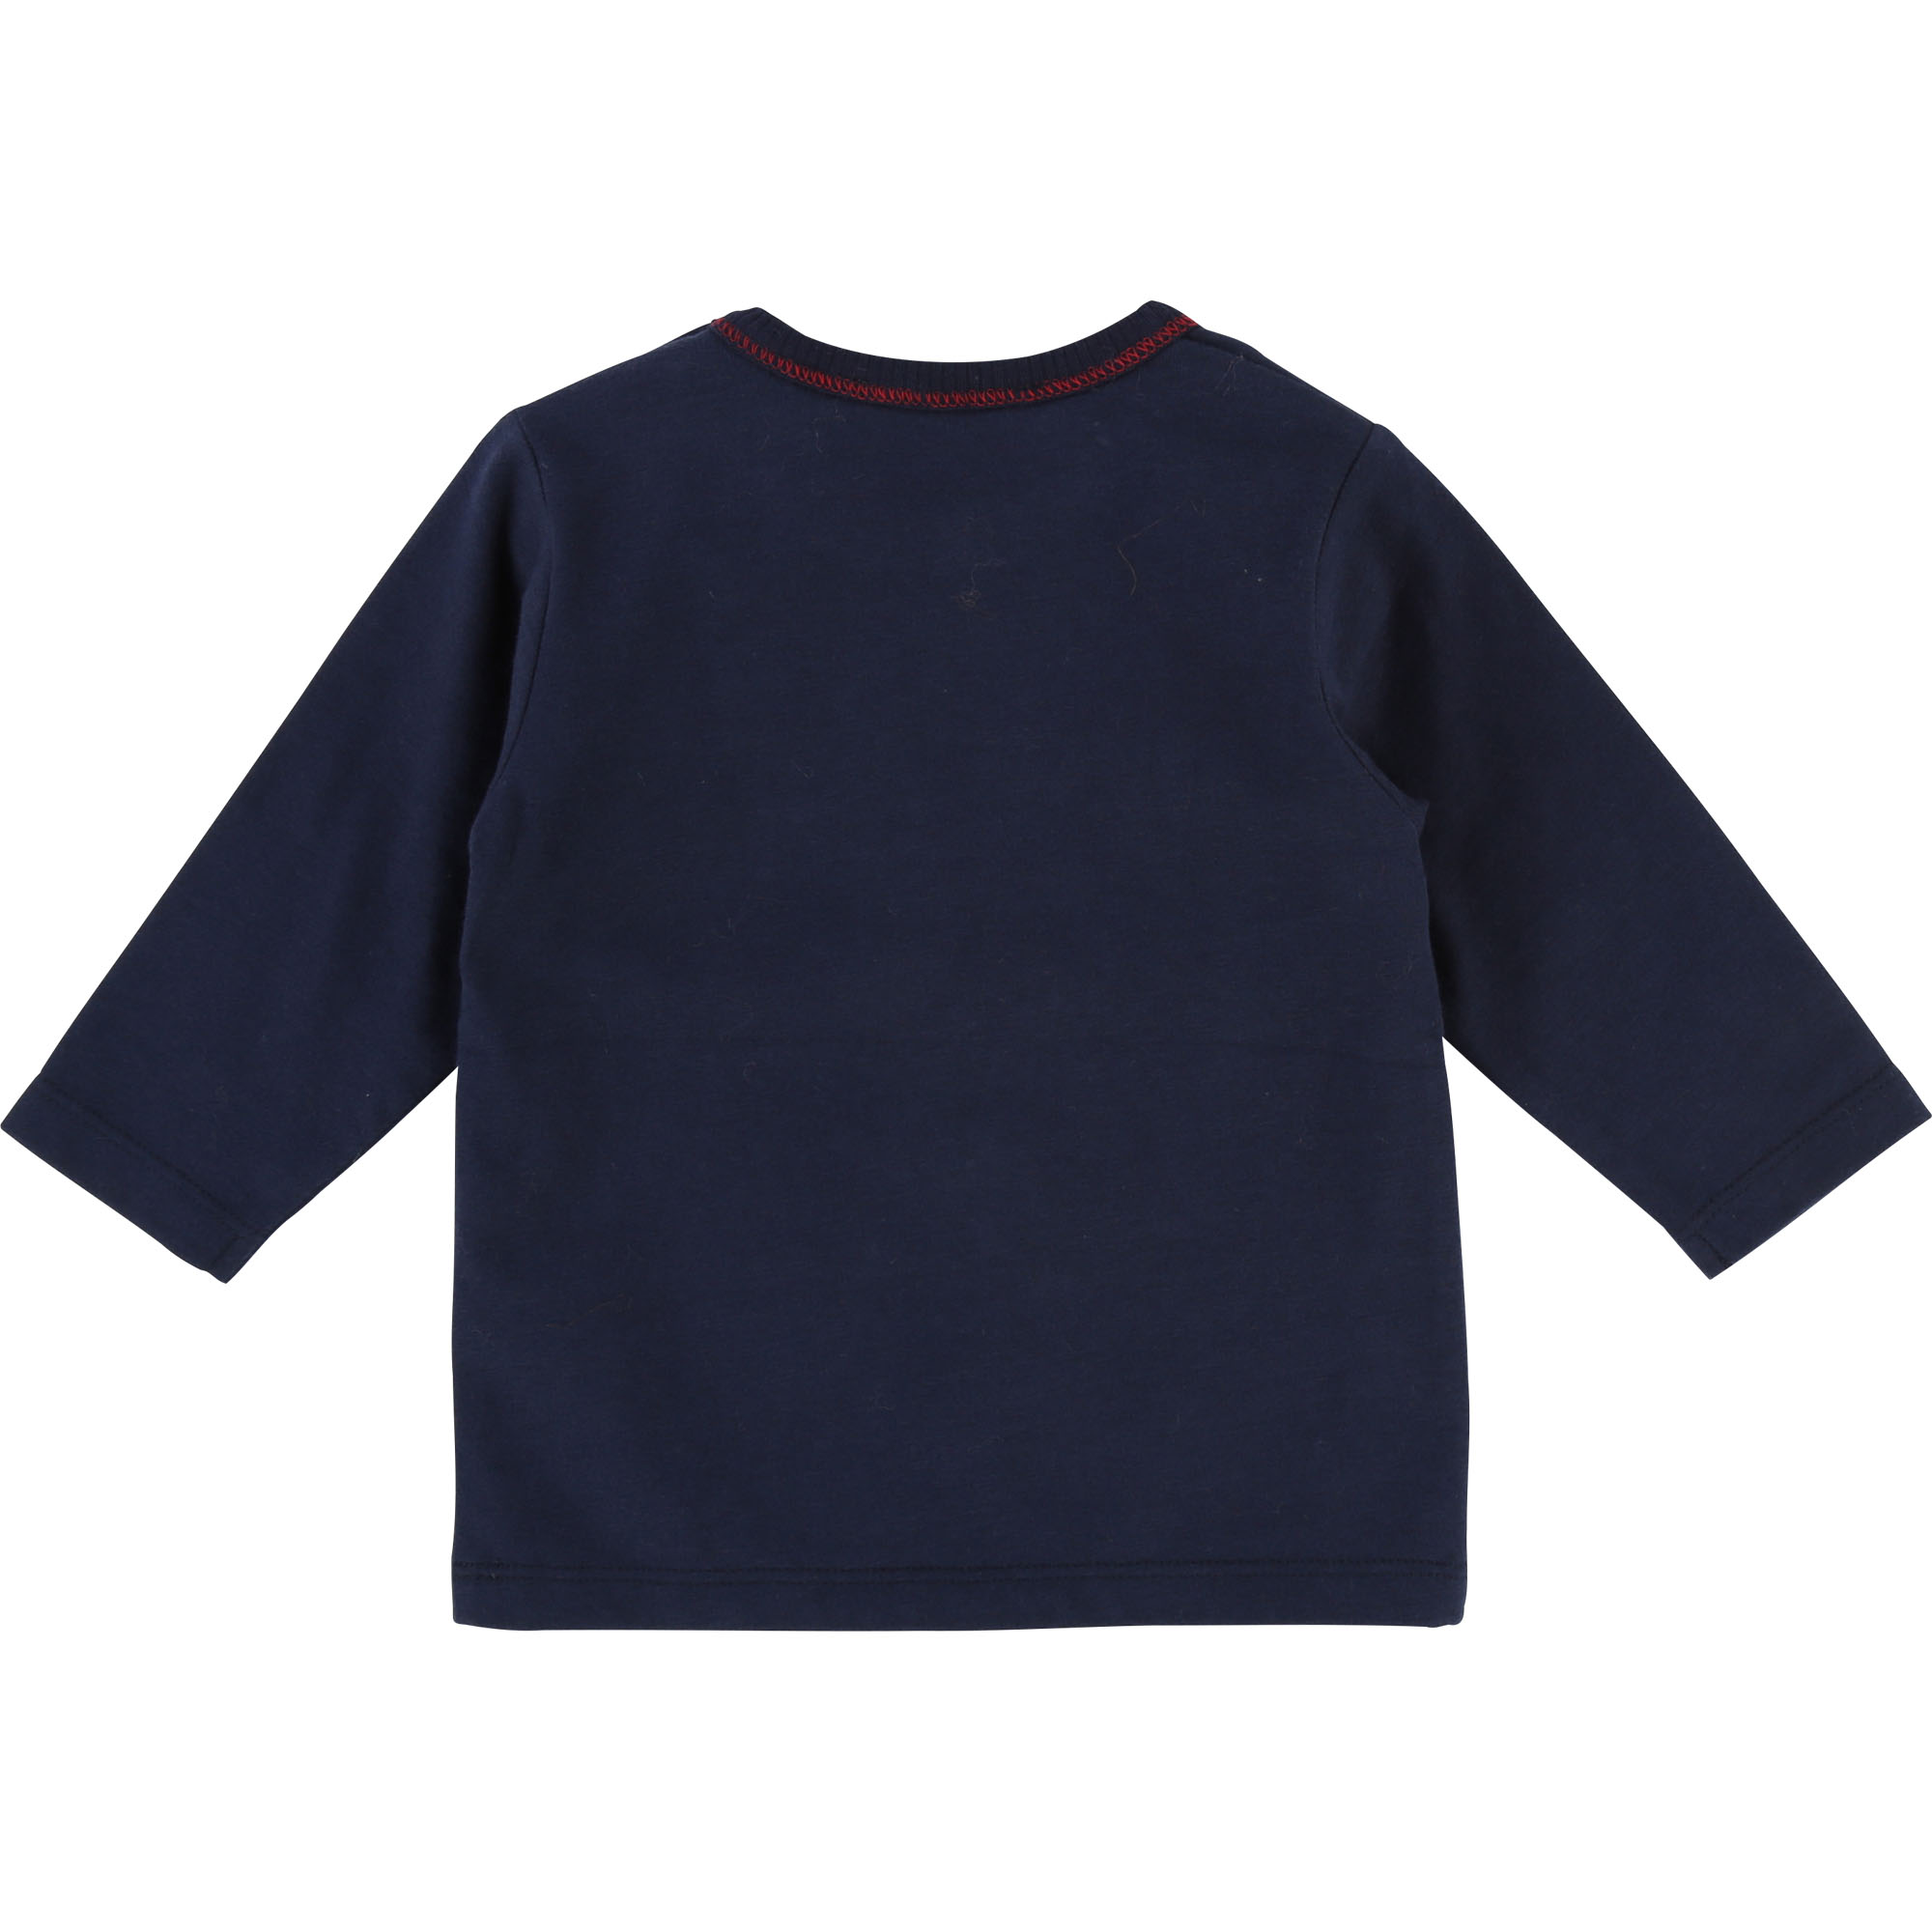 Long-sleeved T-shirt LITTLE MARC JACOBS for BOY